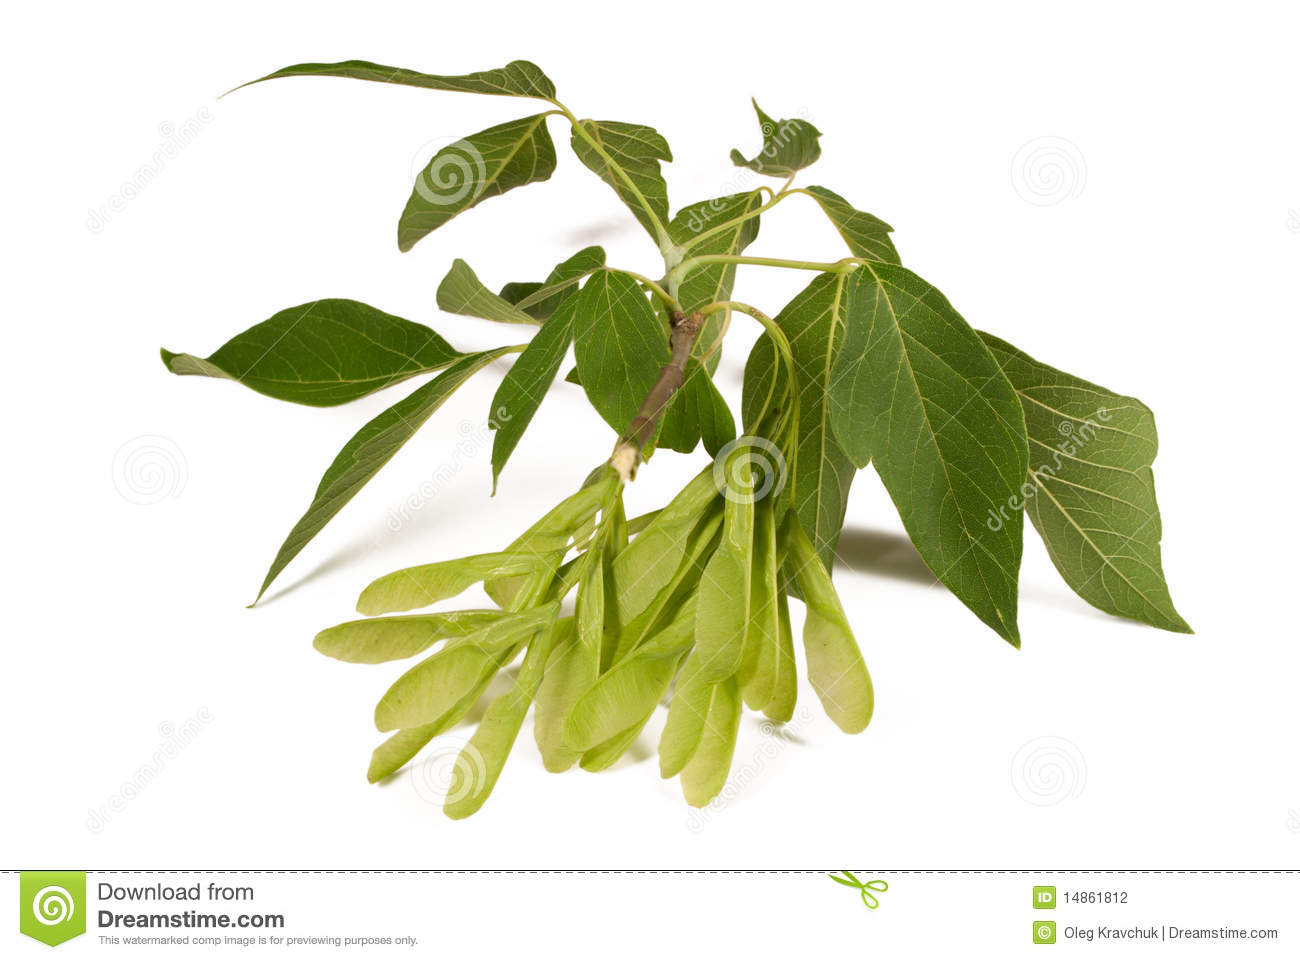 Winged seed pods and leaves from a maple tree